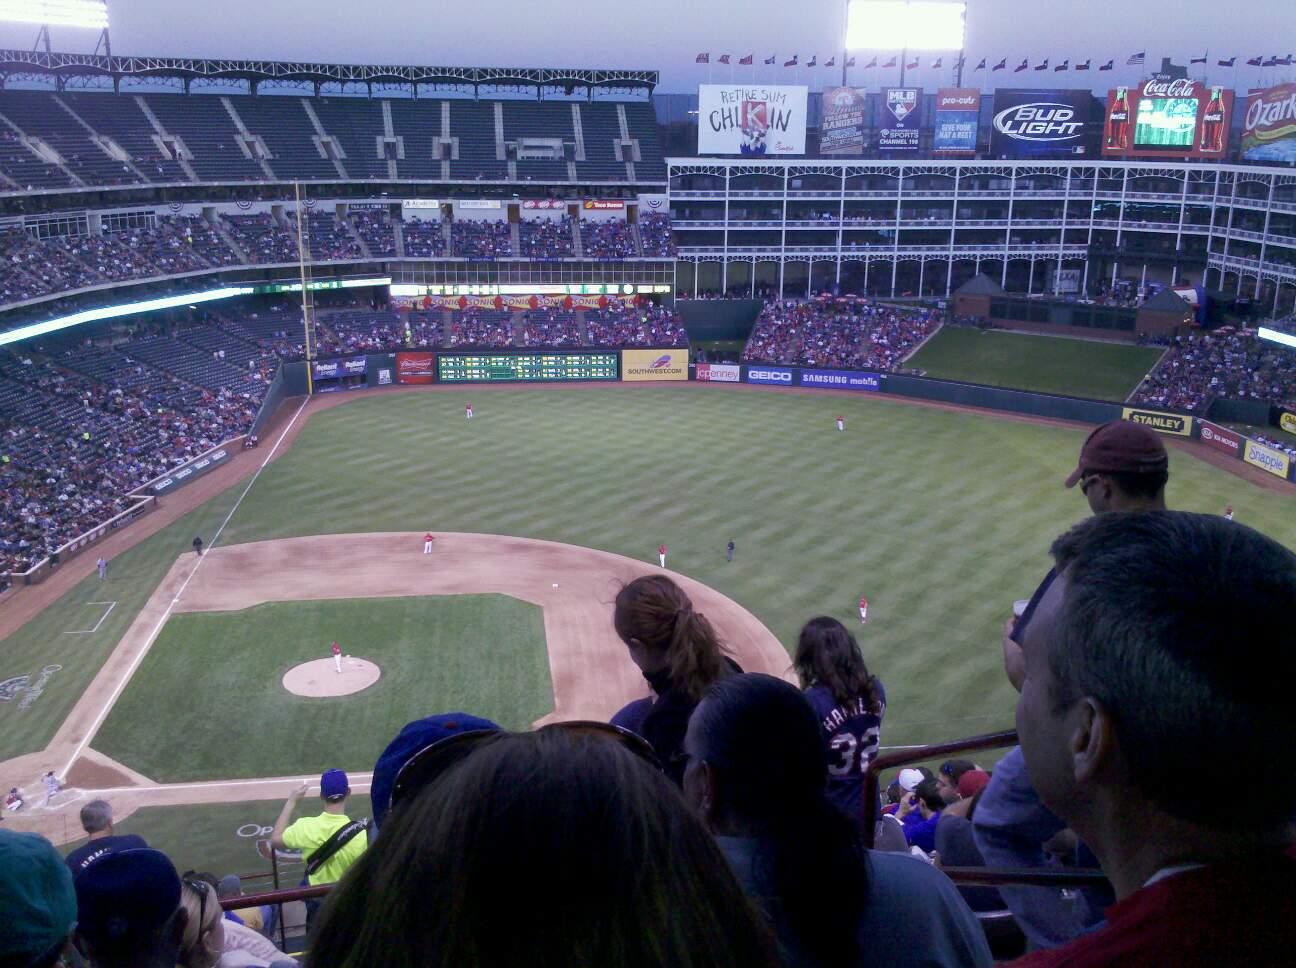 Globe Life Park in Arlington Section 332 Row 16 Seat 24